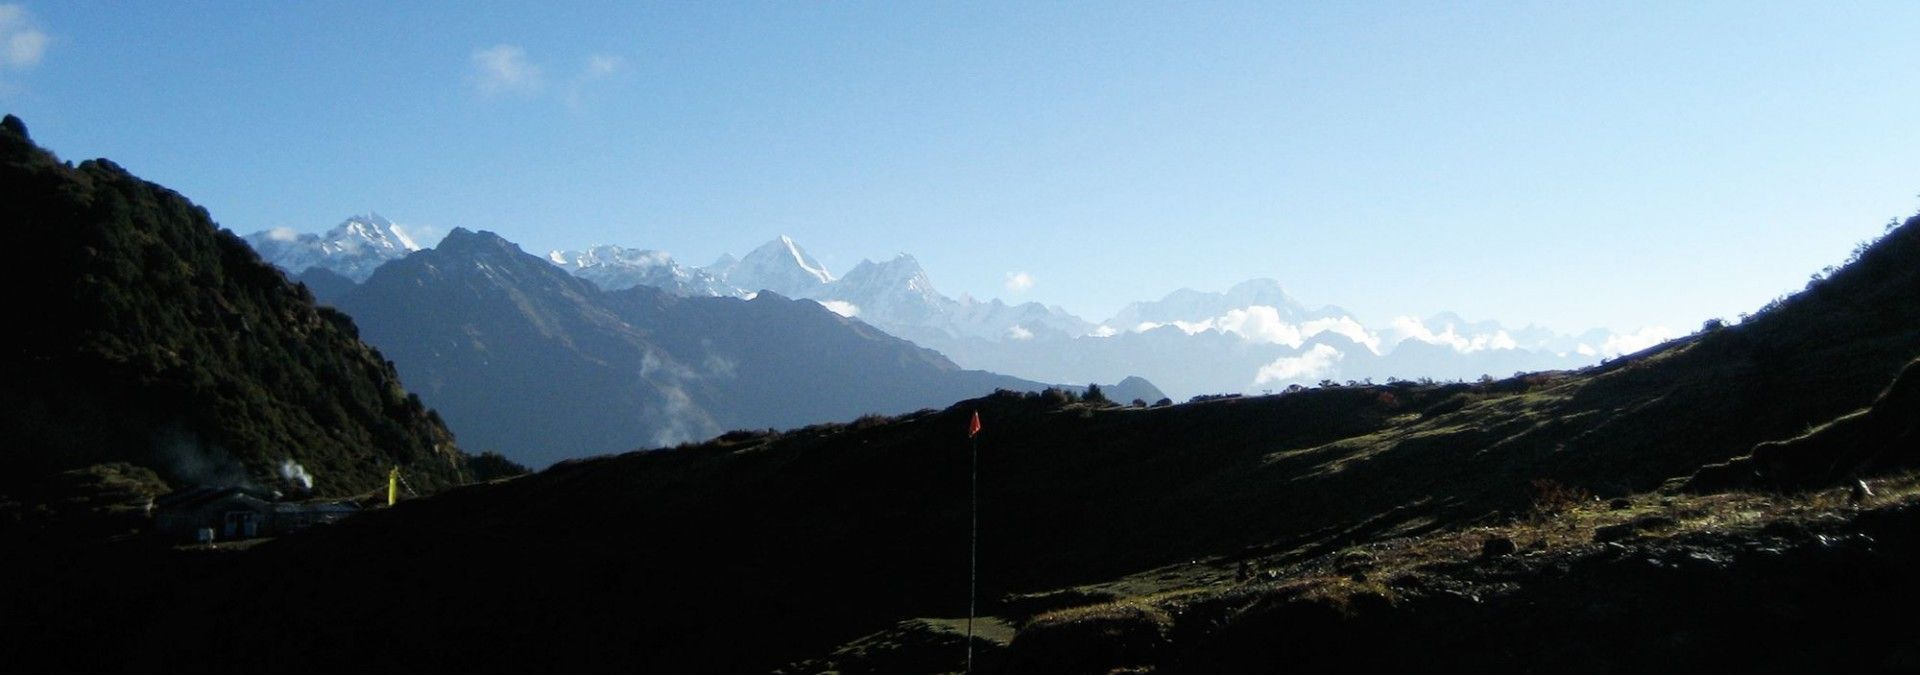 Early_morning_sky_Nepal_Project_Trek.jpg